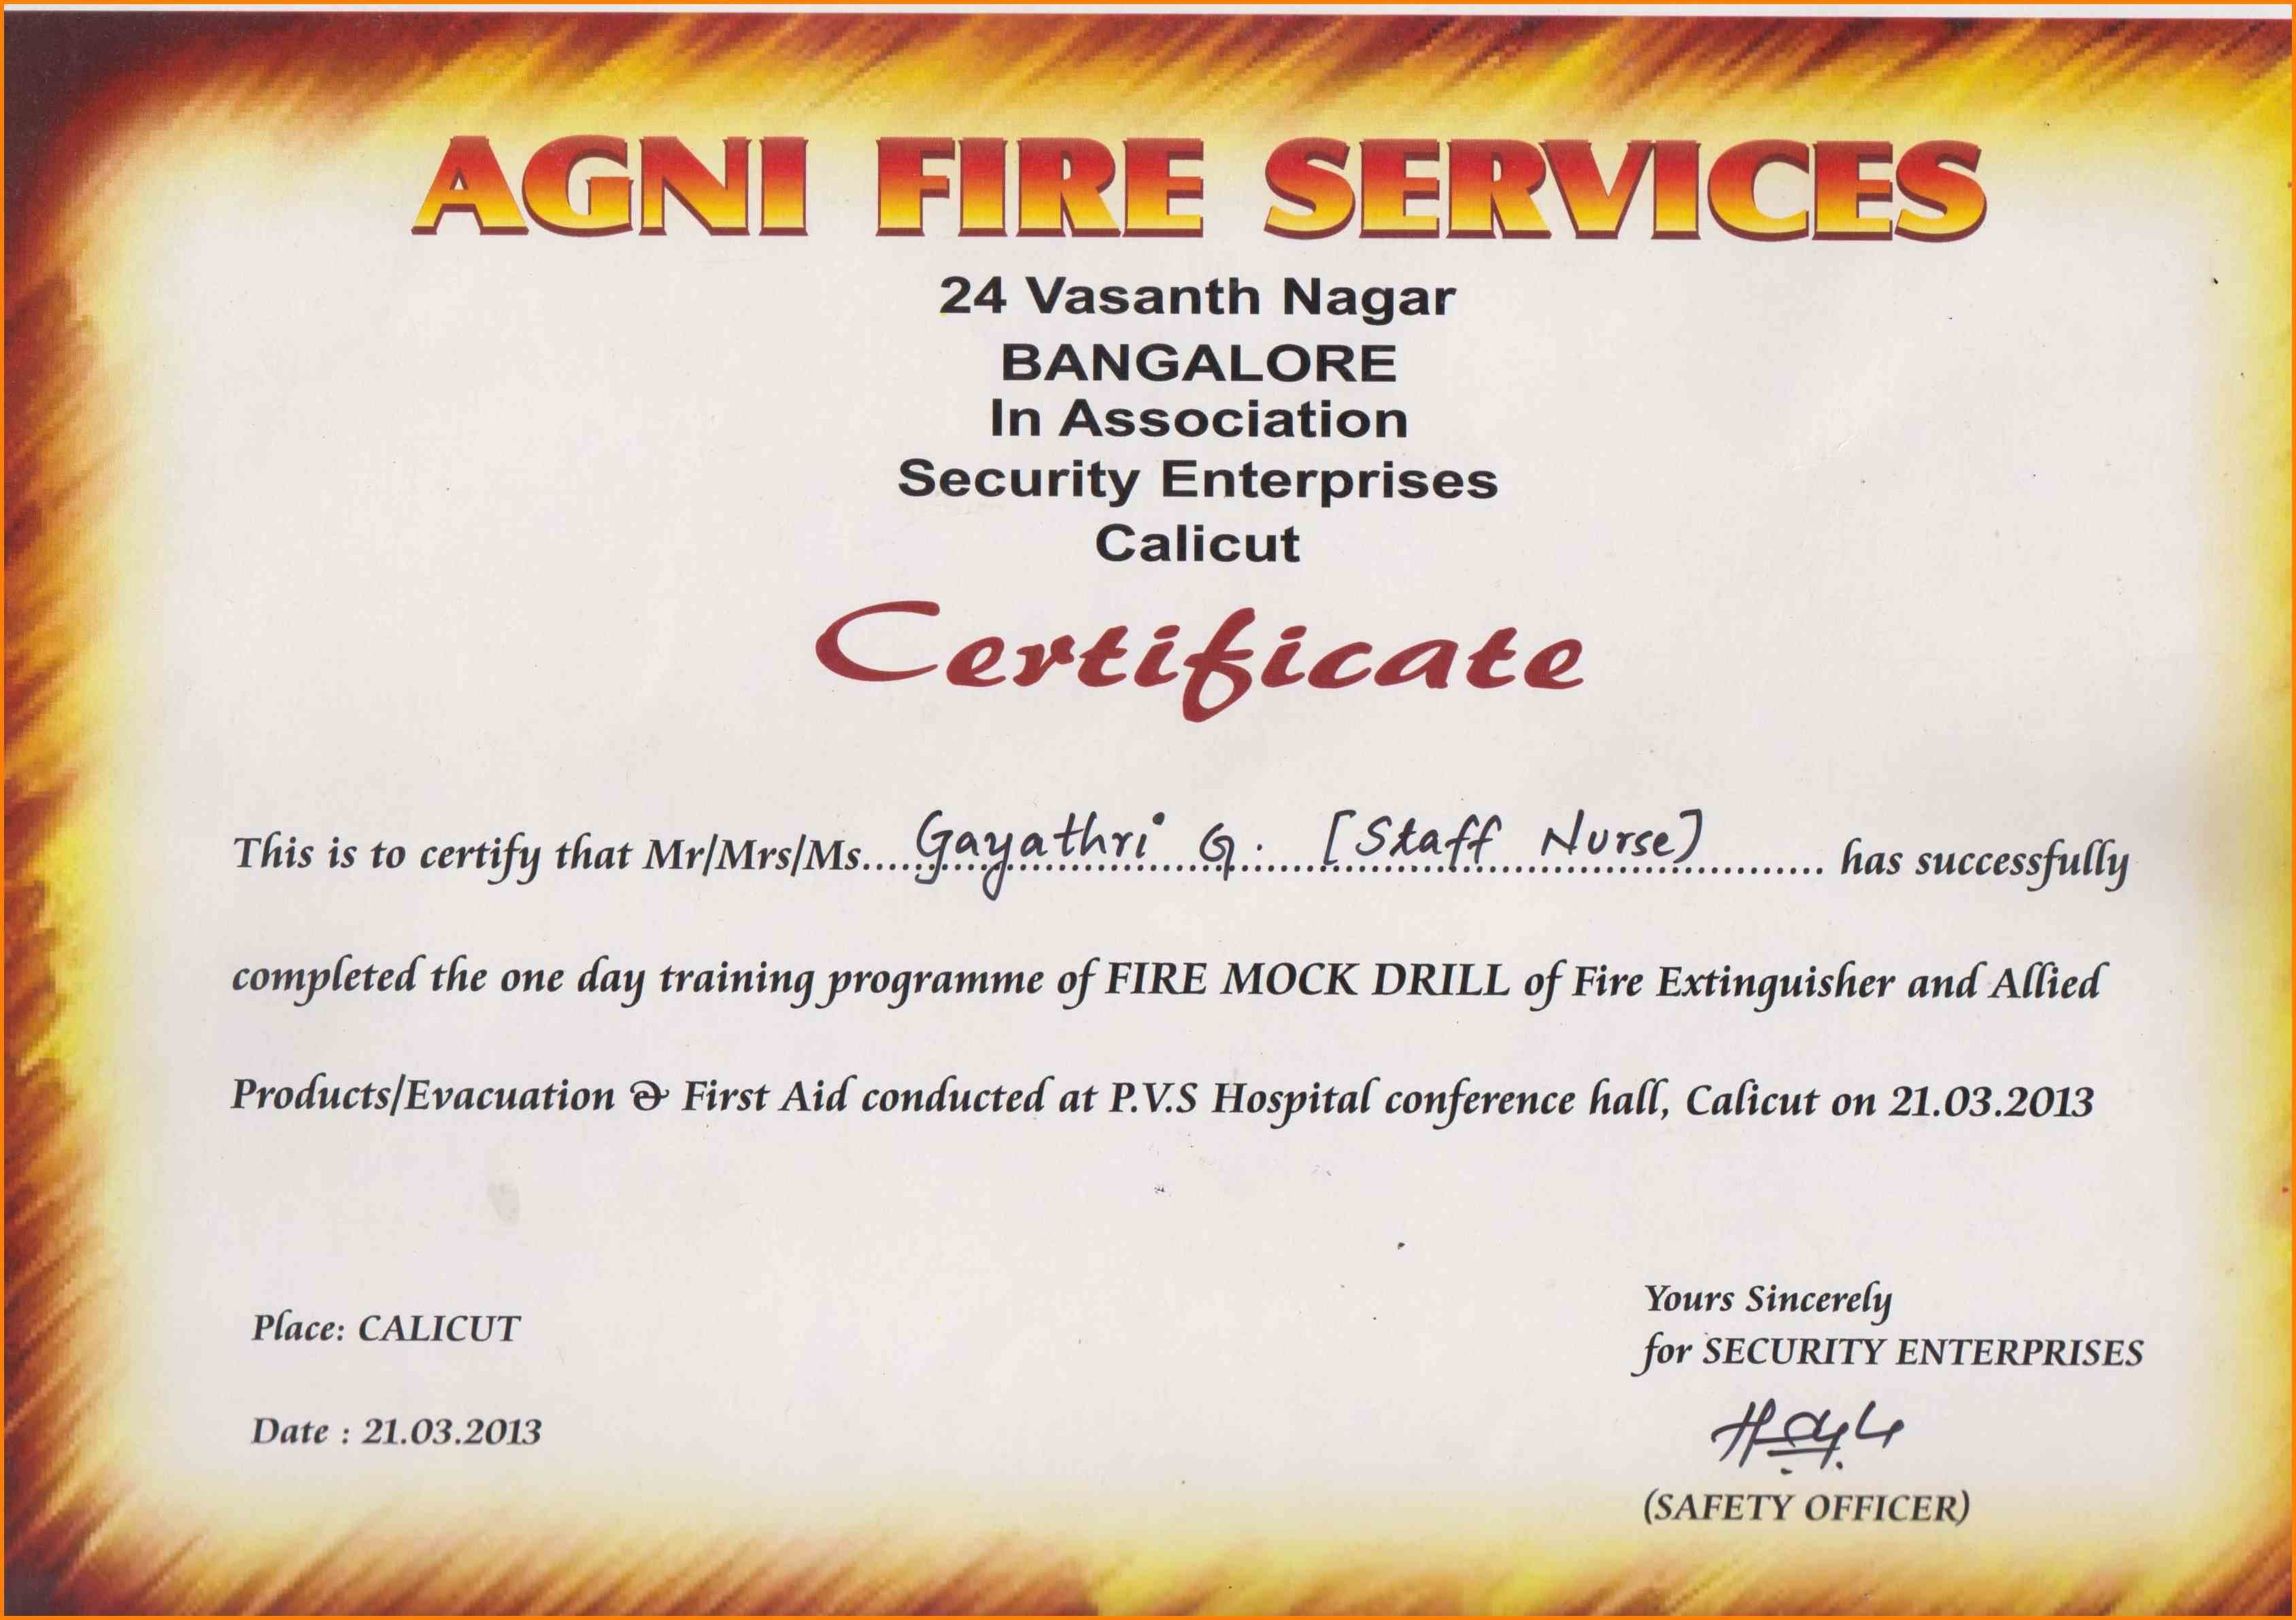 Fire Extinguisher Training Certificate Template Word Inside Fire Extinguisher Certificate Template